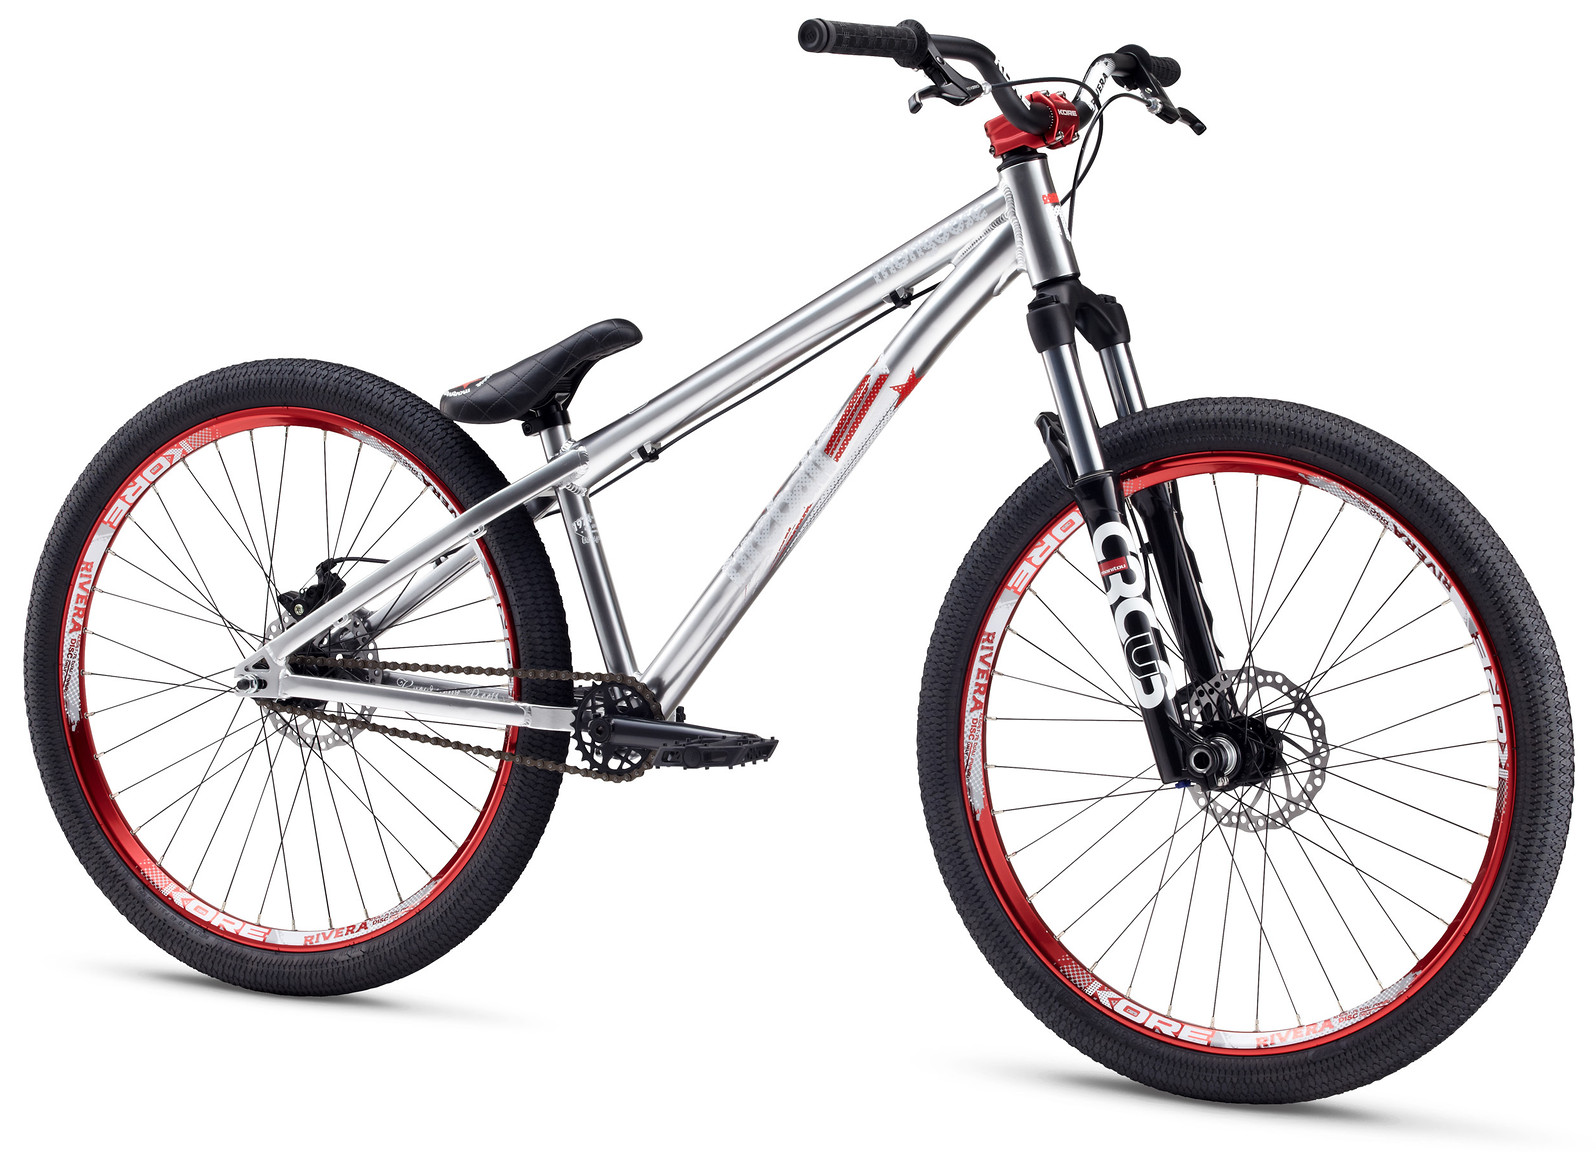 2014 Mongoose Fireball 26 SS Bike 2014 Mongoose Fireball 26 SS Bike